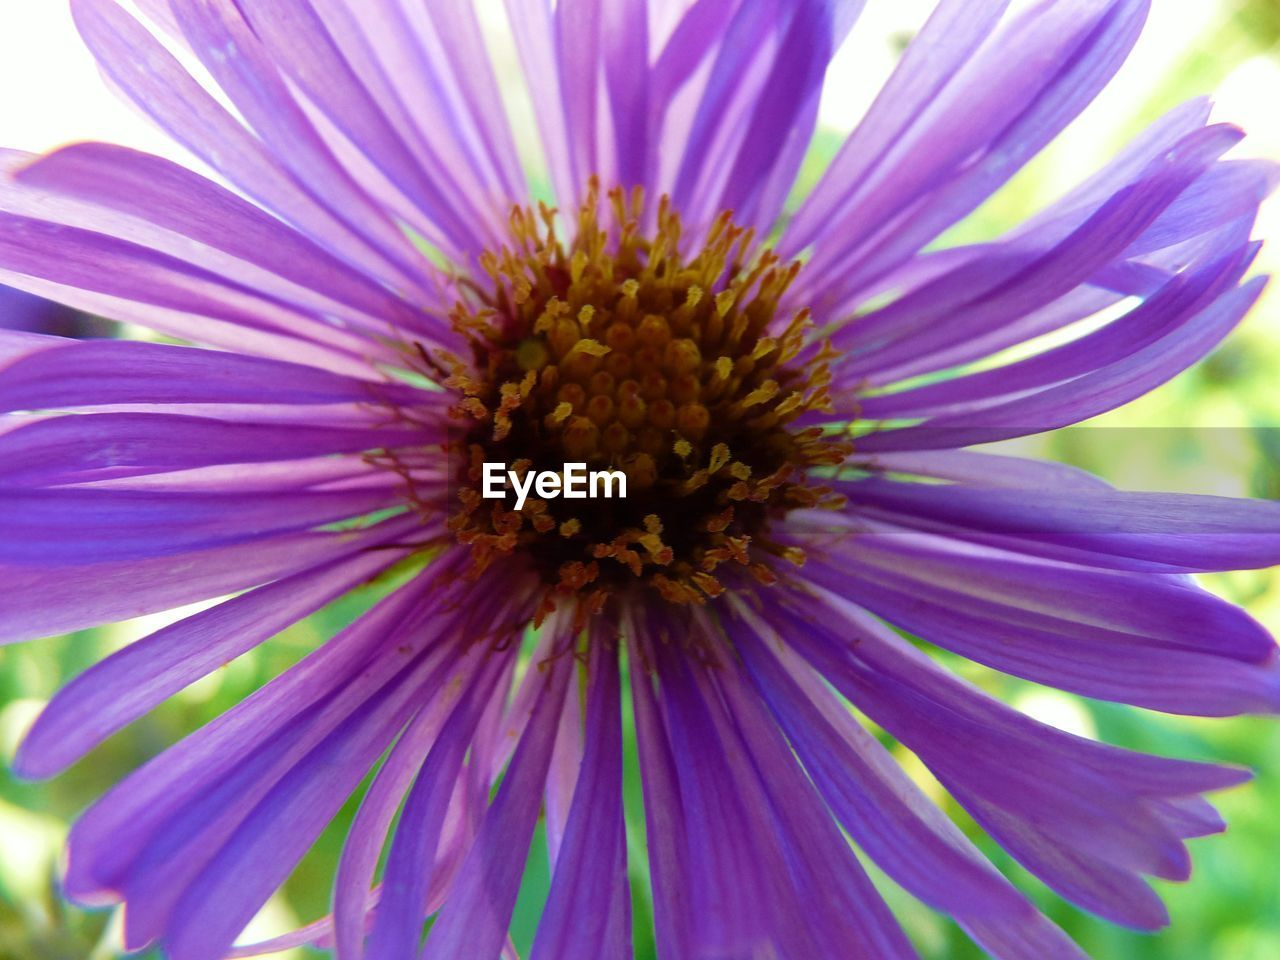 flower, petal, fragility, beauty in nature, nature, flower head, growth, freshness, purple, pollen, no people, day, close-up, outdoors, plant, blooming, springtime, osteospermum, eastern purple coneflower